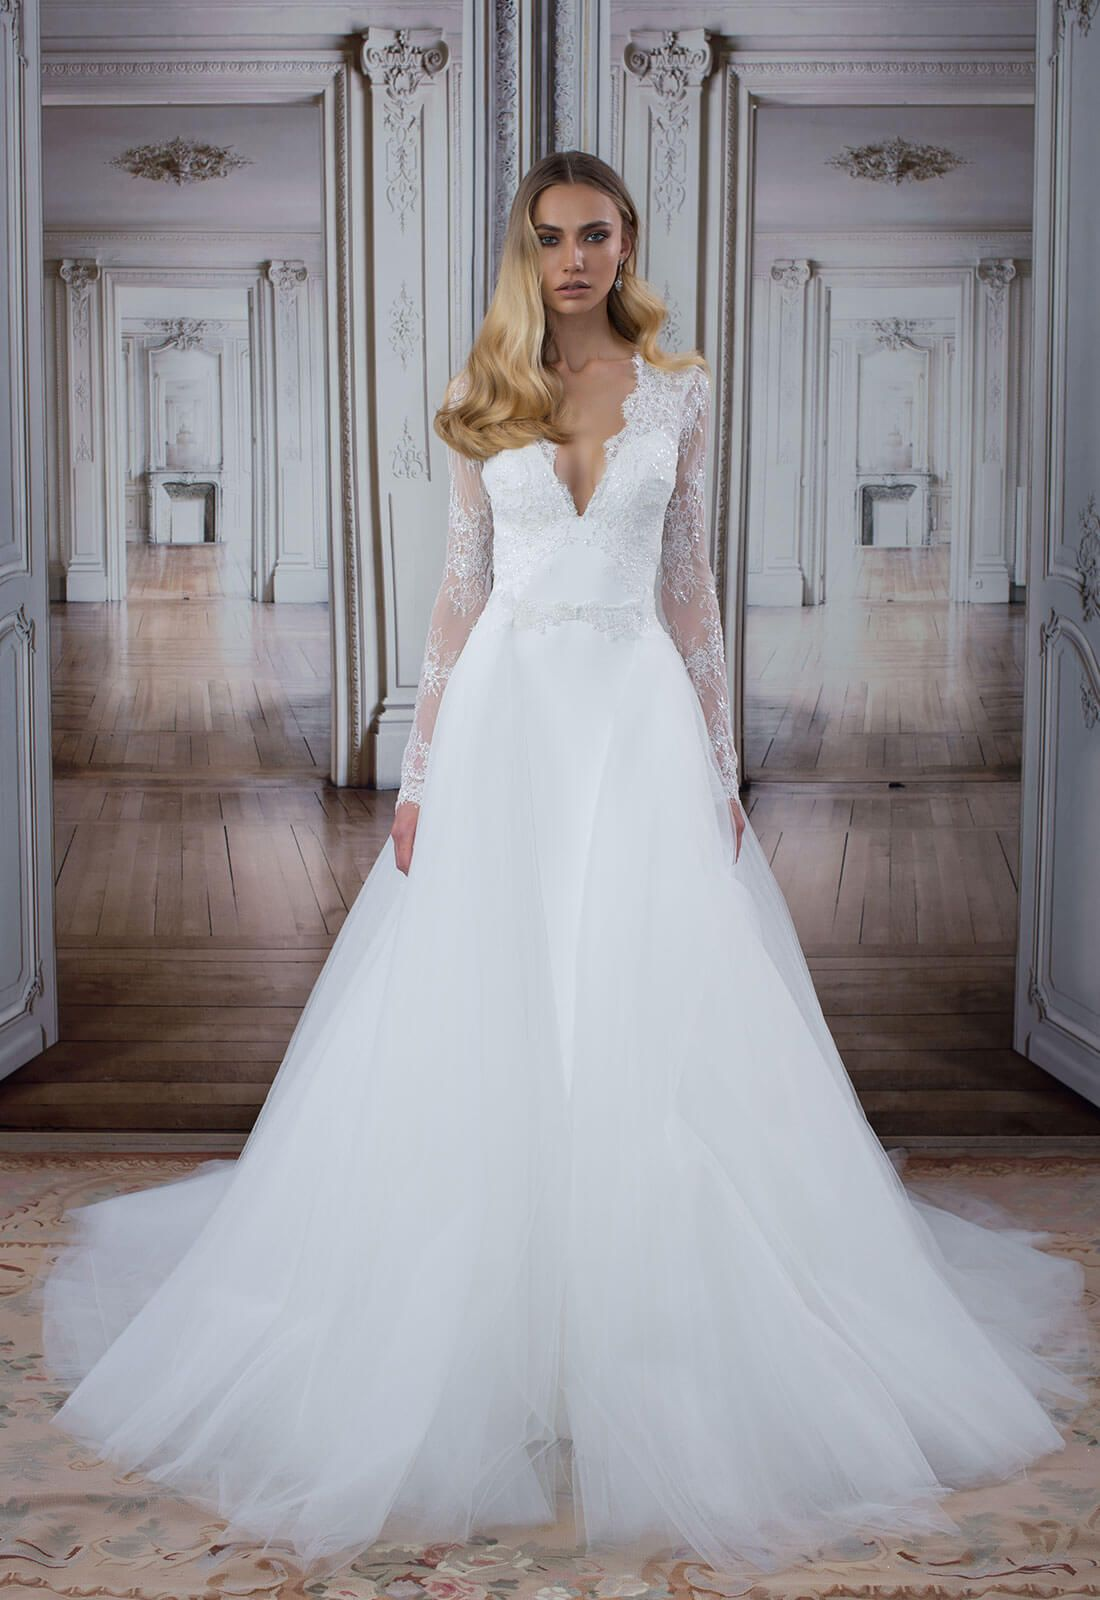 Pnina Wedding Gowns